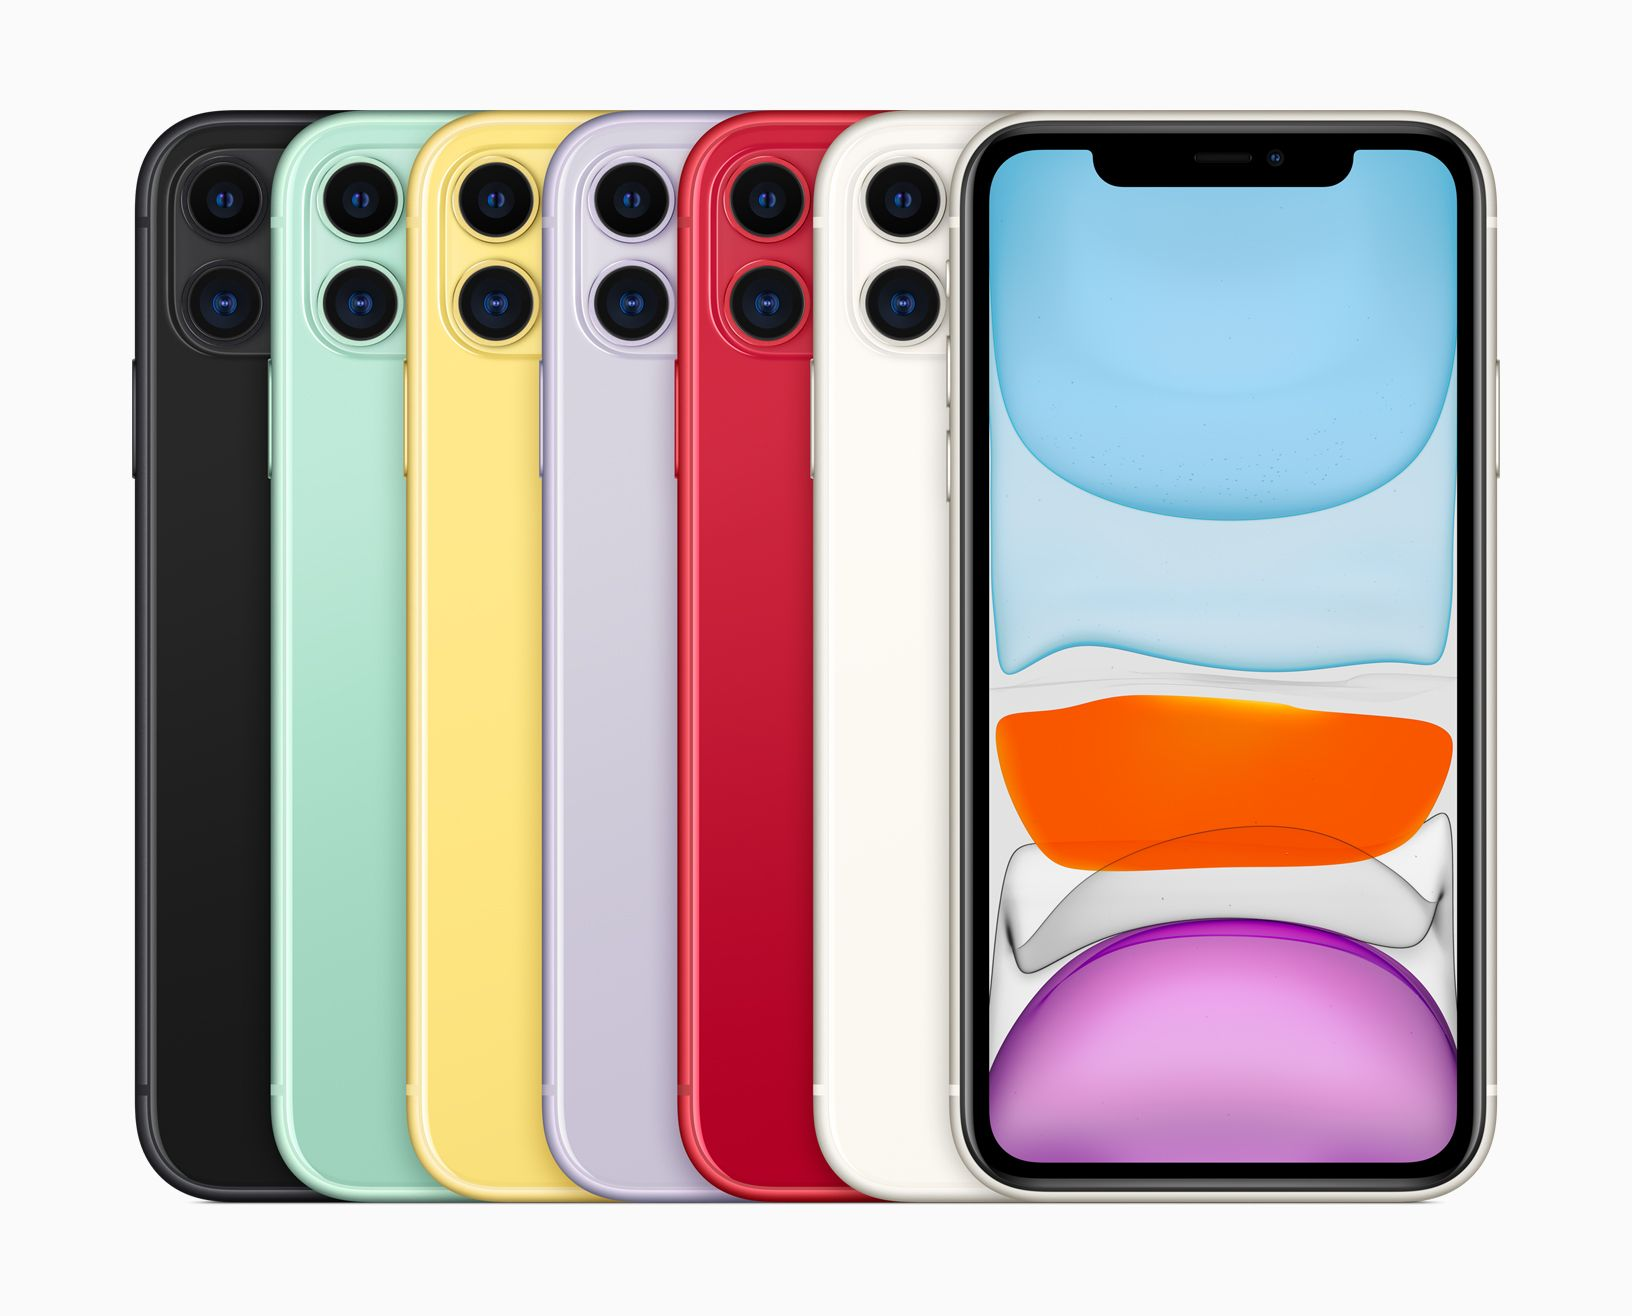 Apple Launches Three New Versions Of The iPhone: iPhone 11